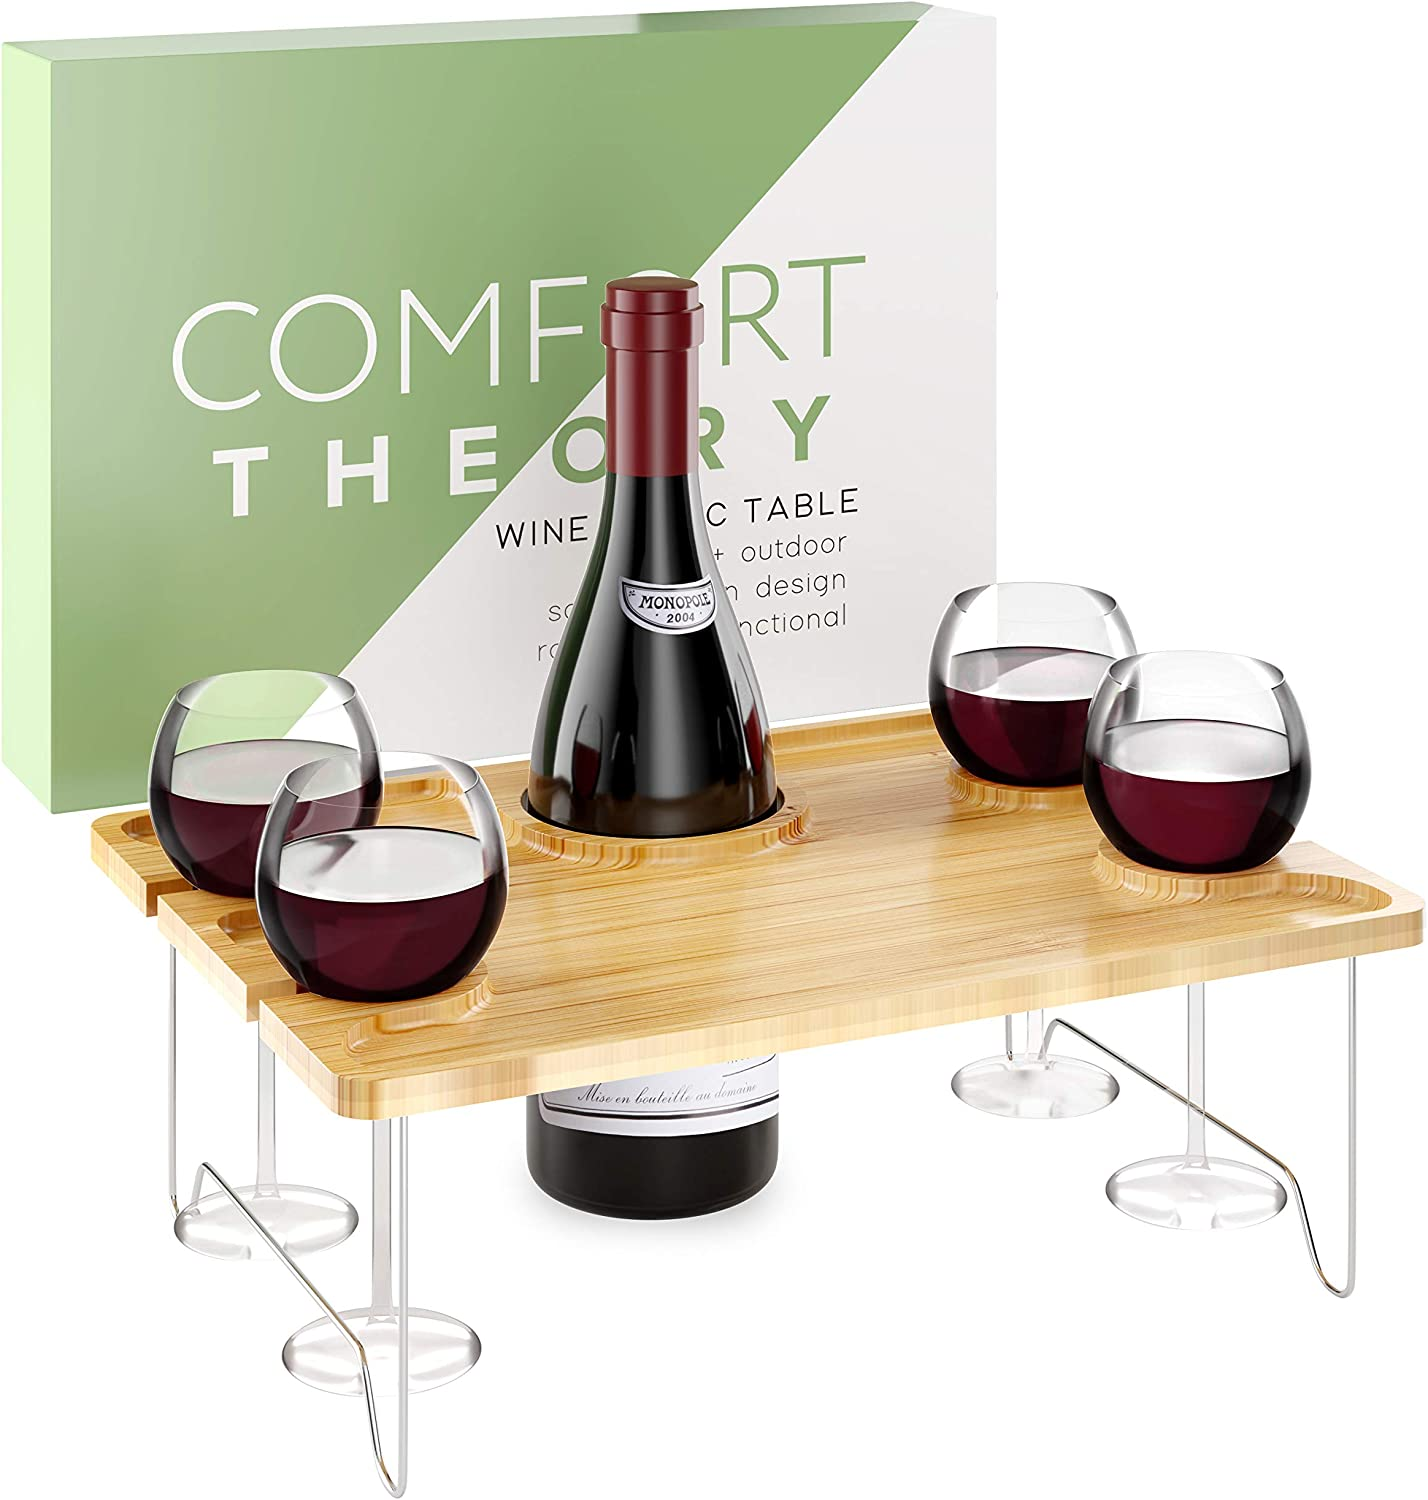 Comfort Theory Wine Picnic Table for Romantic Date Nights | Portable Table for Indoor & Outdoor Use | Bed Tray | Folding Table with Wine Glass and Hard Seltzer Can Holders | Cheese Board Serving Tray